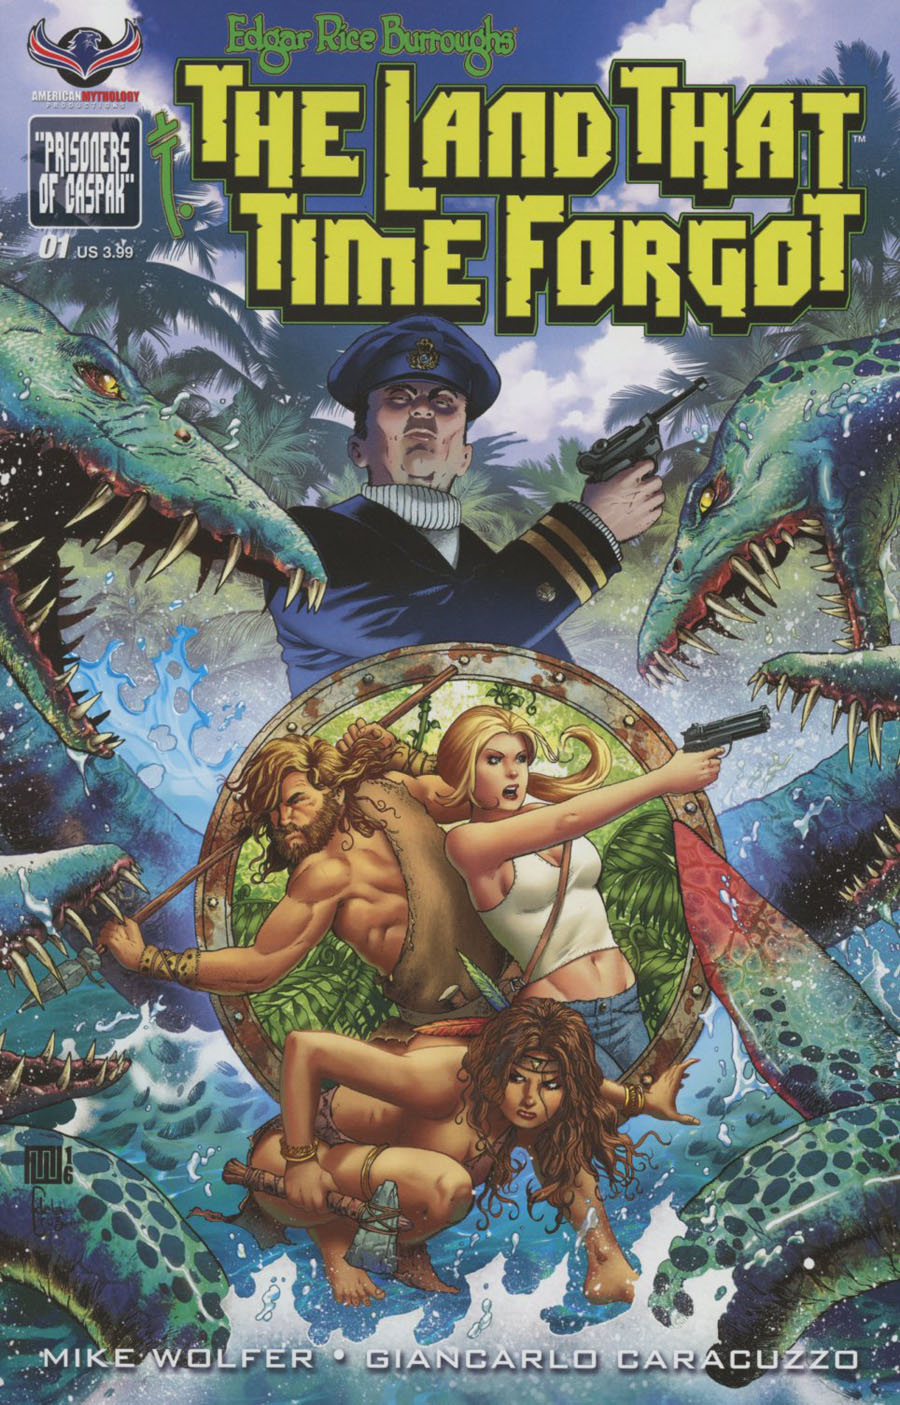 Edgar Rice Burroughs Land That Time Forgot #1 Cover A Regular Mike Wolfer Cover